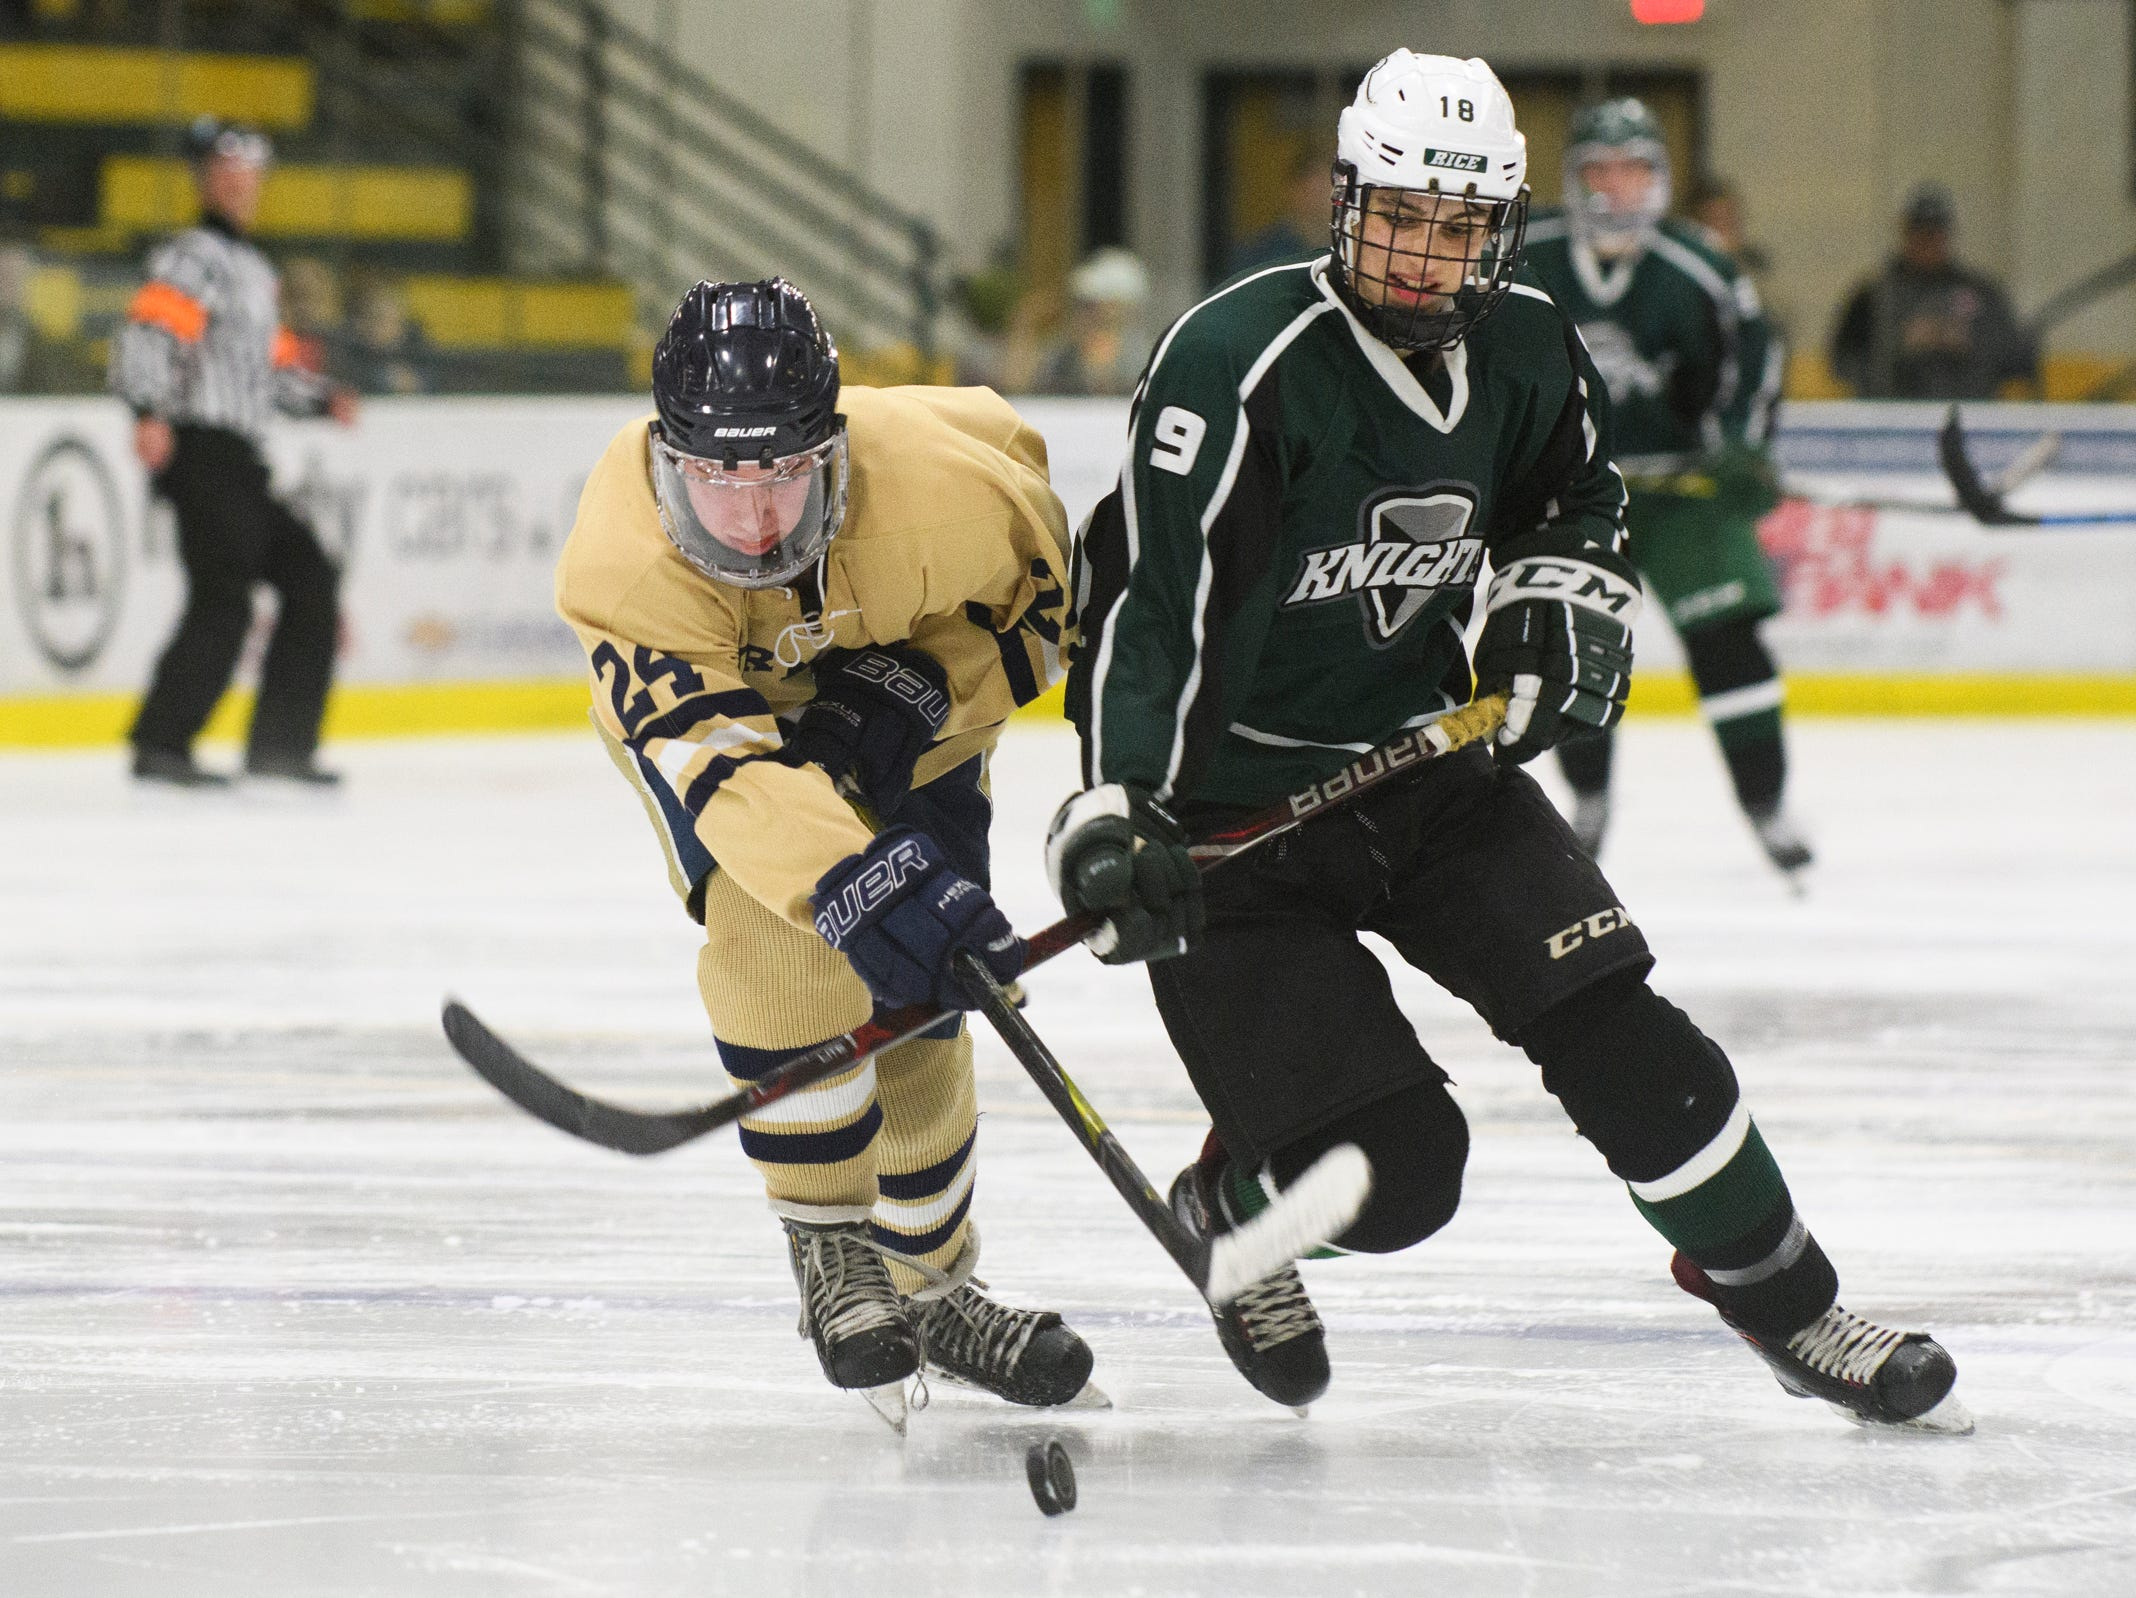 Rice's Alex Gamarra (9) battles for the puck with Essex's Ian Amaliksen (24) during the DI boys hockey championship game between the Rice Green Knights and the Essex Hornets at Gutterson Field House on Wednesday night March 13, 2019 in Burlington, Vermont.